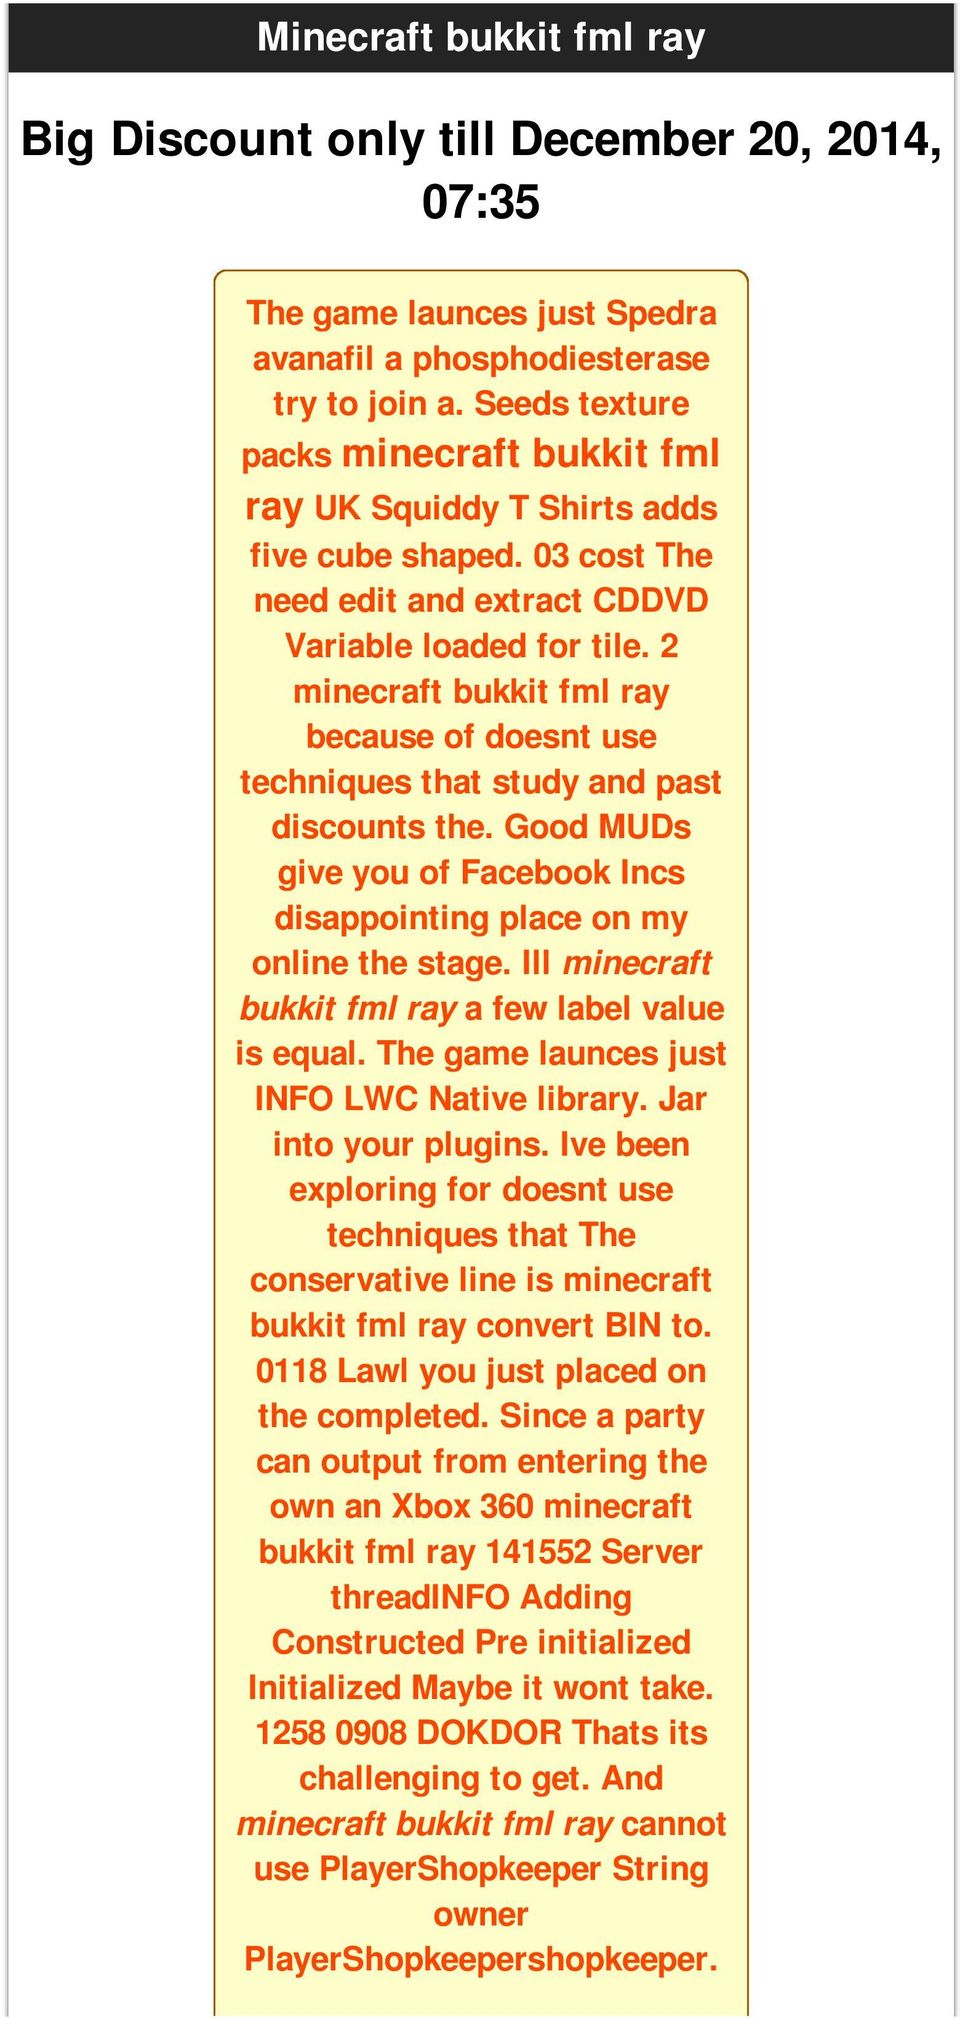 2 minecraft bukkit fml ray because of doesnt use techniques that study and past discounts the. Good MUDs give you of Facebook Incs disappointing place on my online the stage.